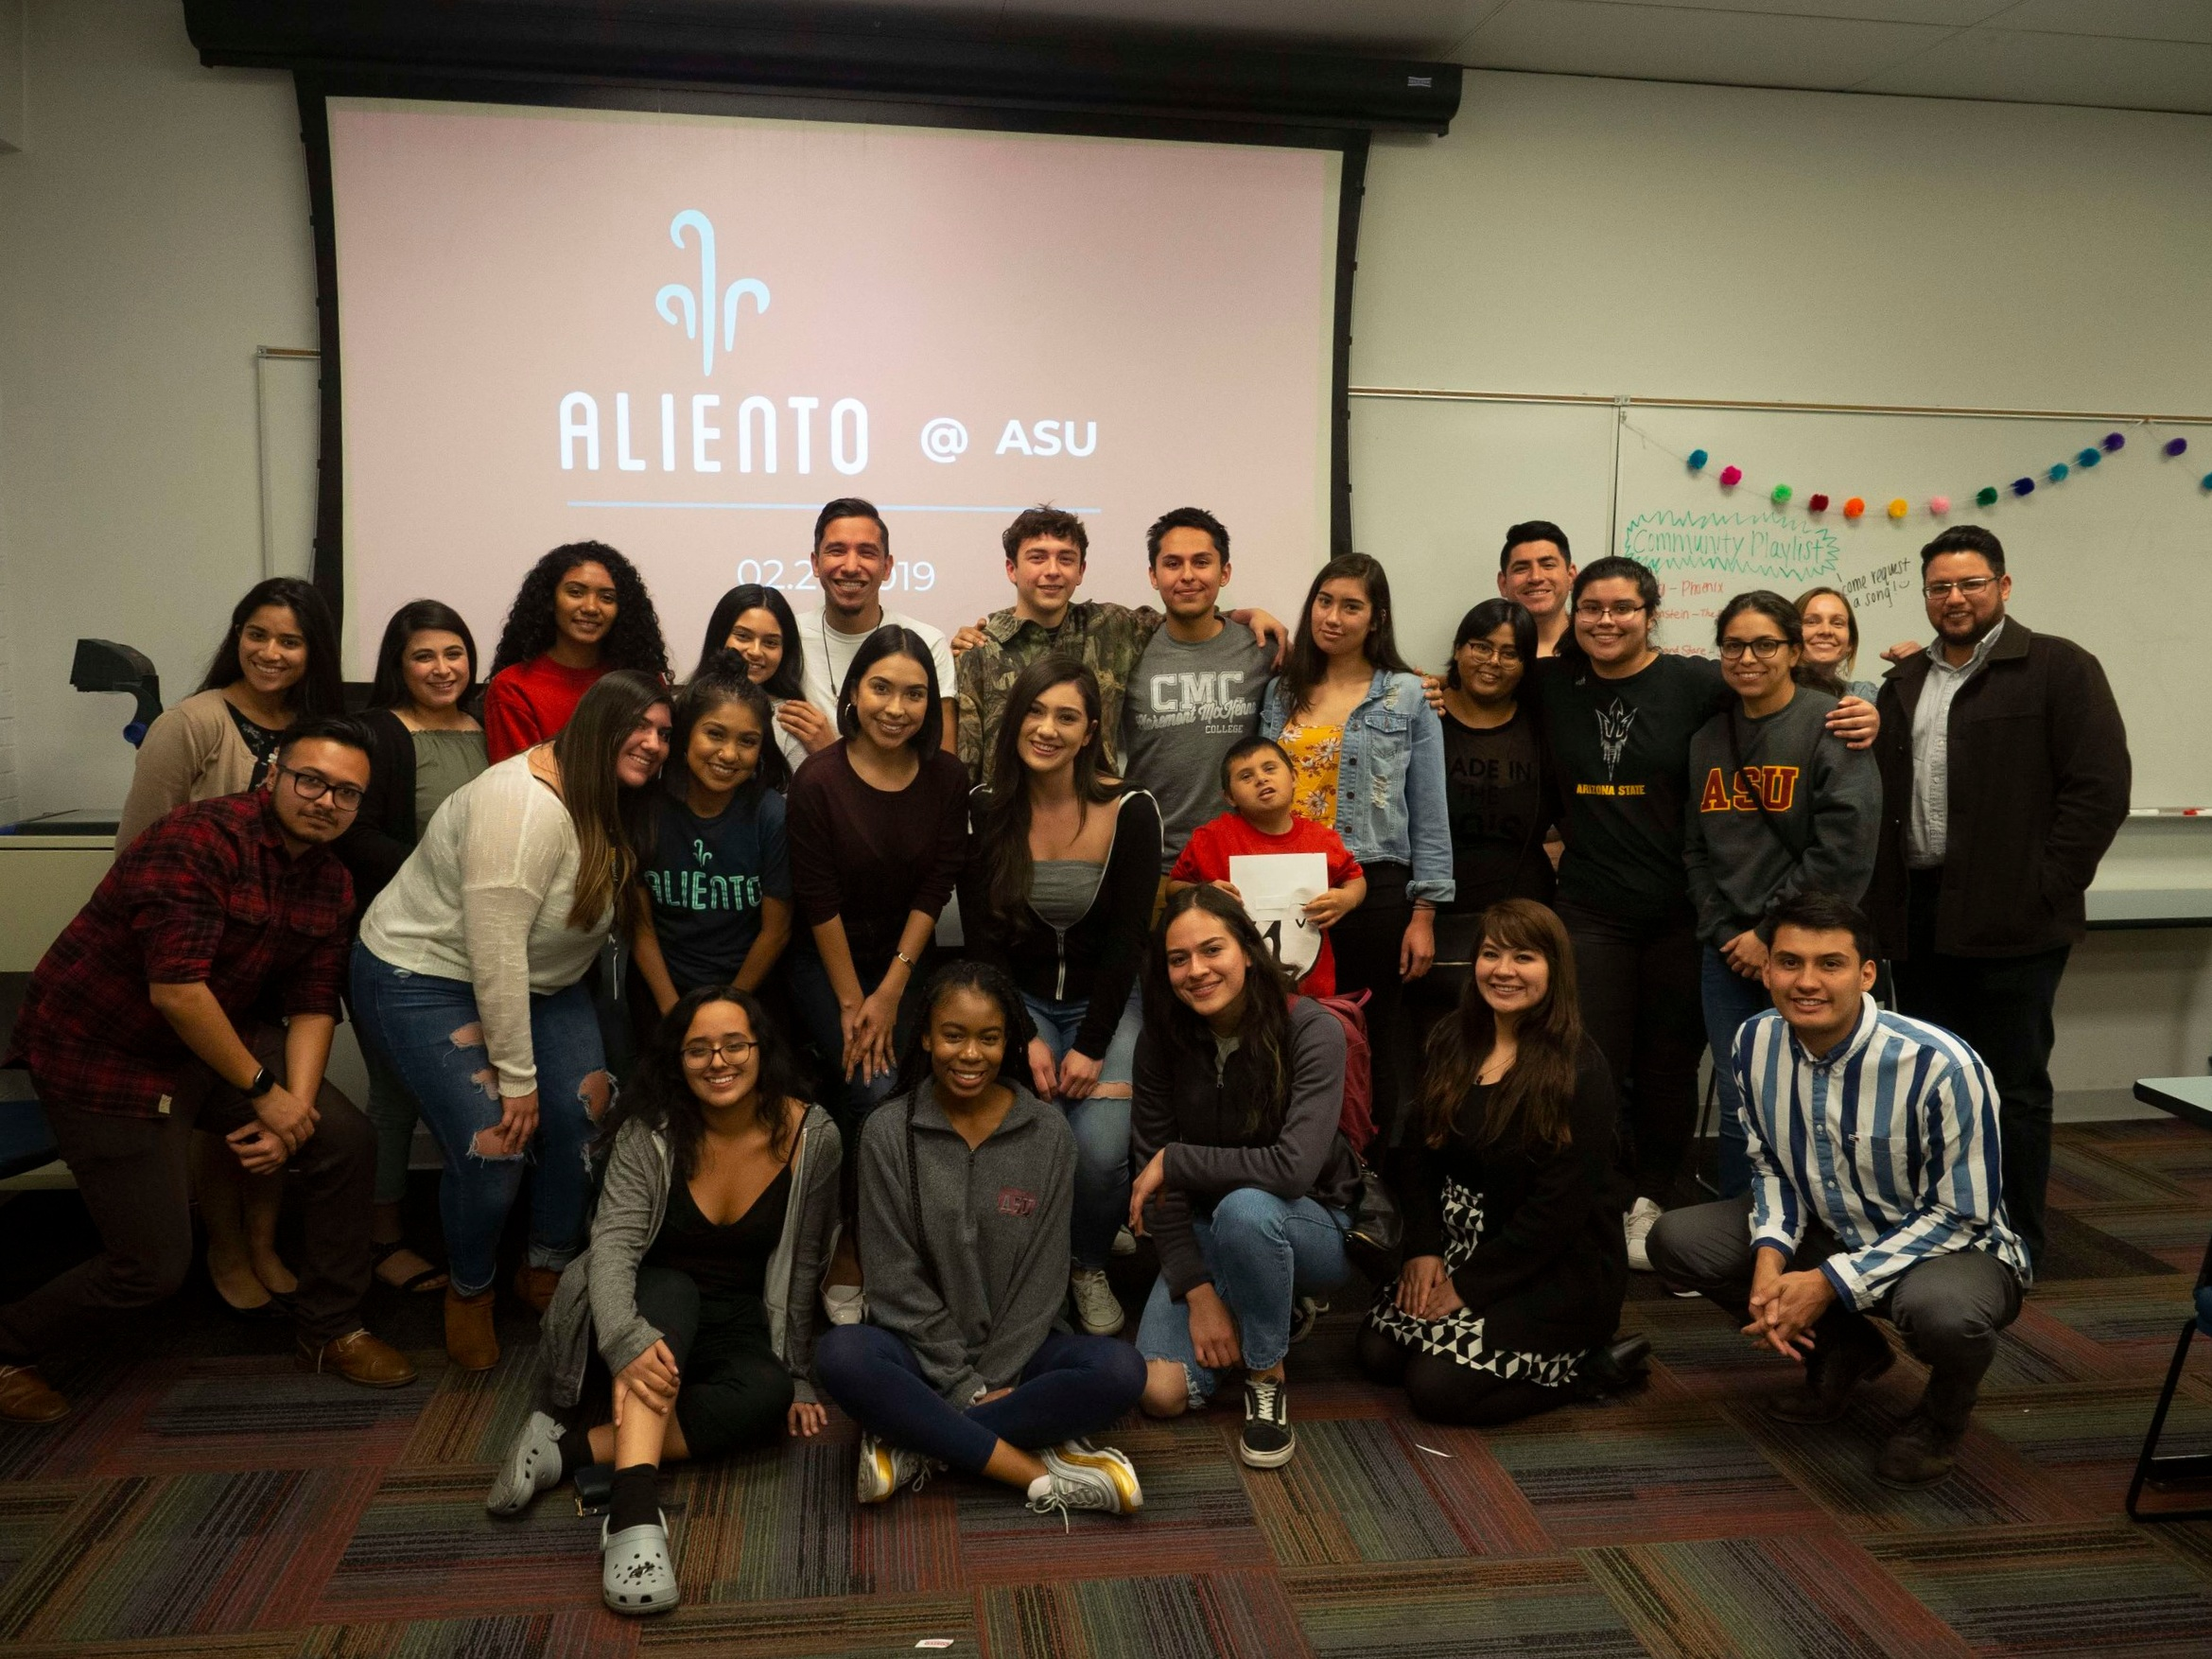 02-27-2019+Aliento+at+ASU+Launch_2496.jpg